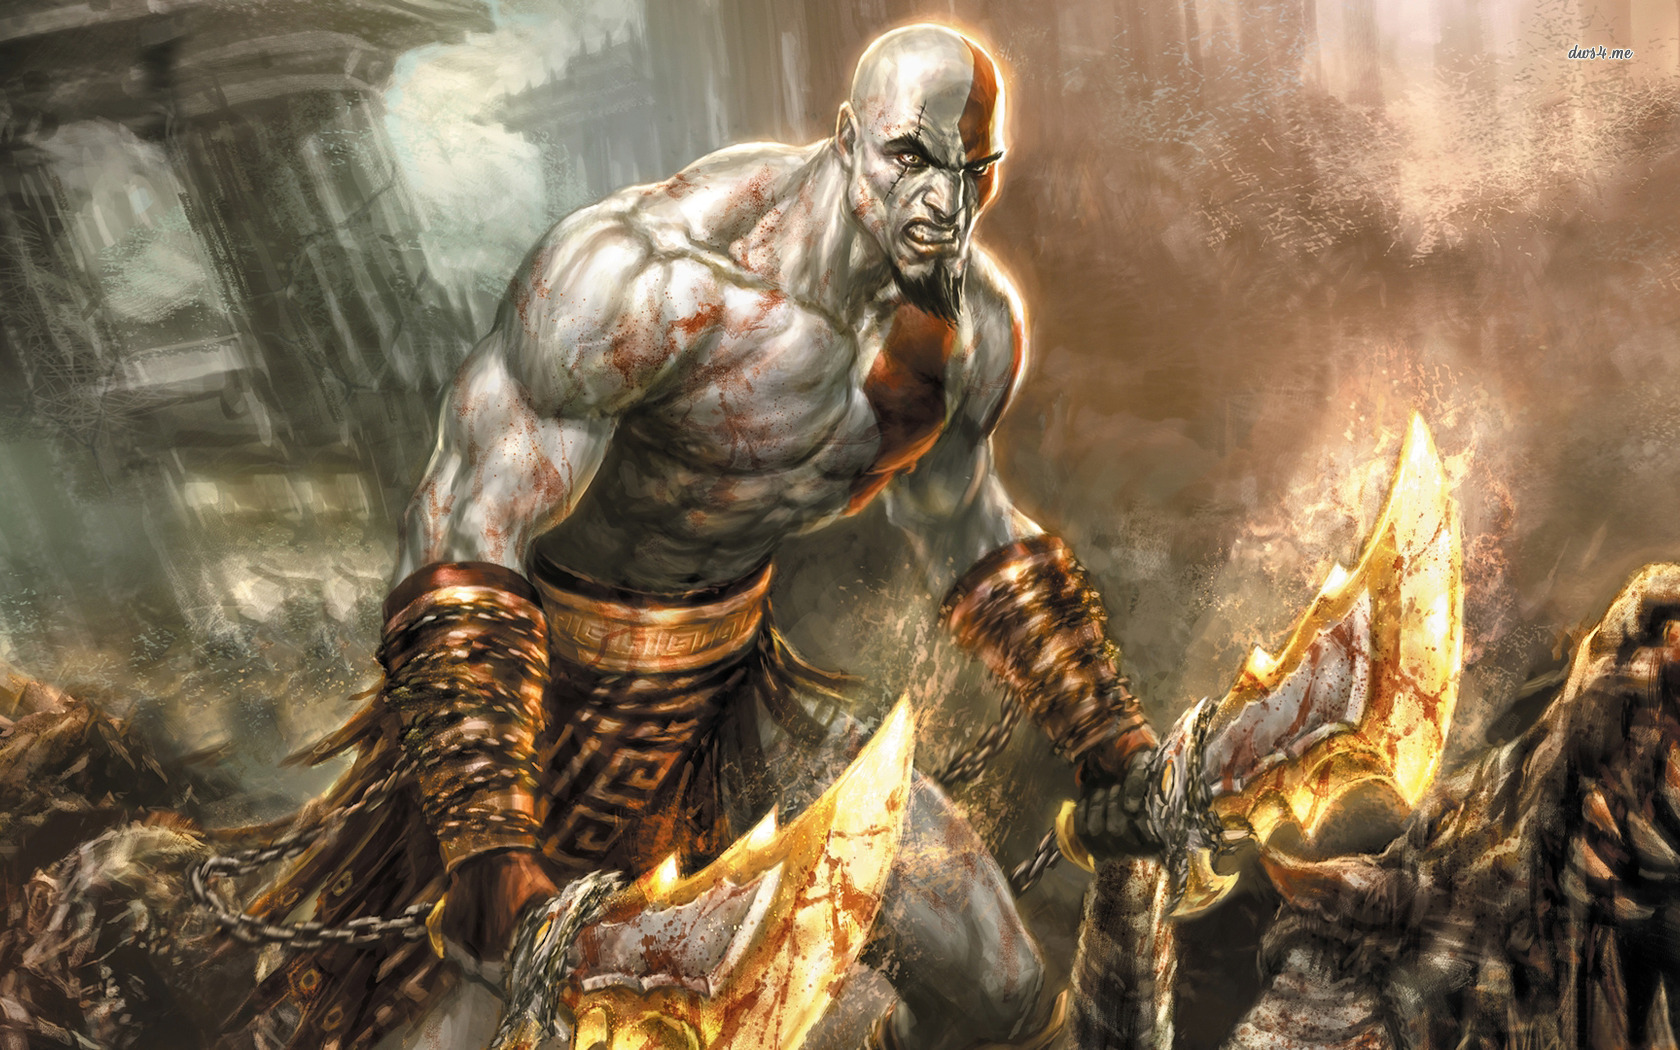 Free Download Kratos God Of War Wallpaper 1280x800 Kratos